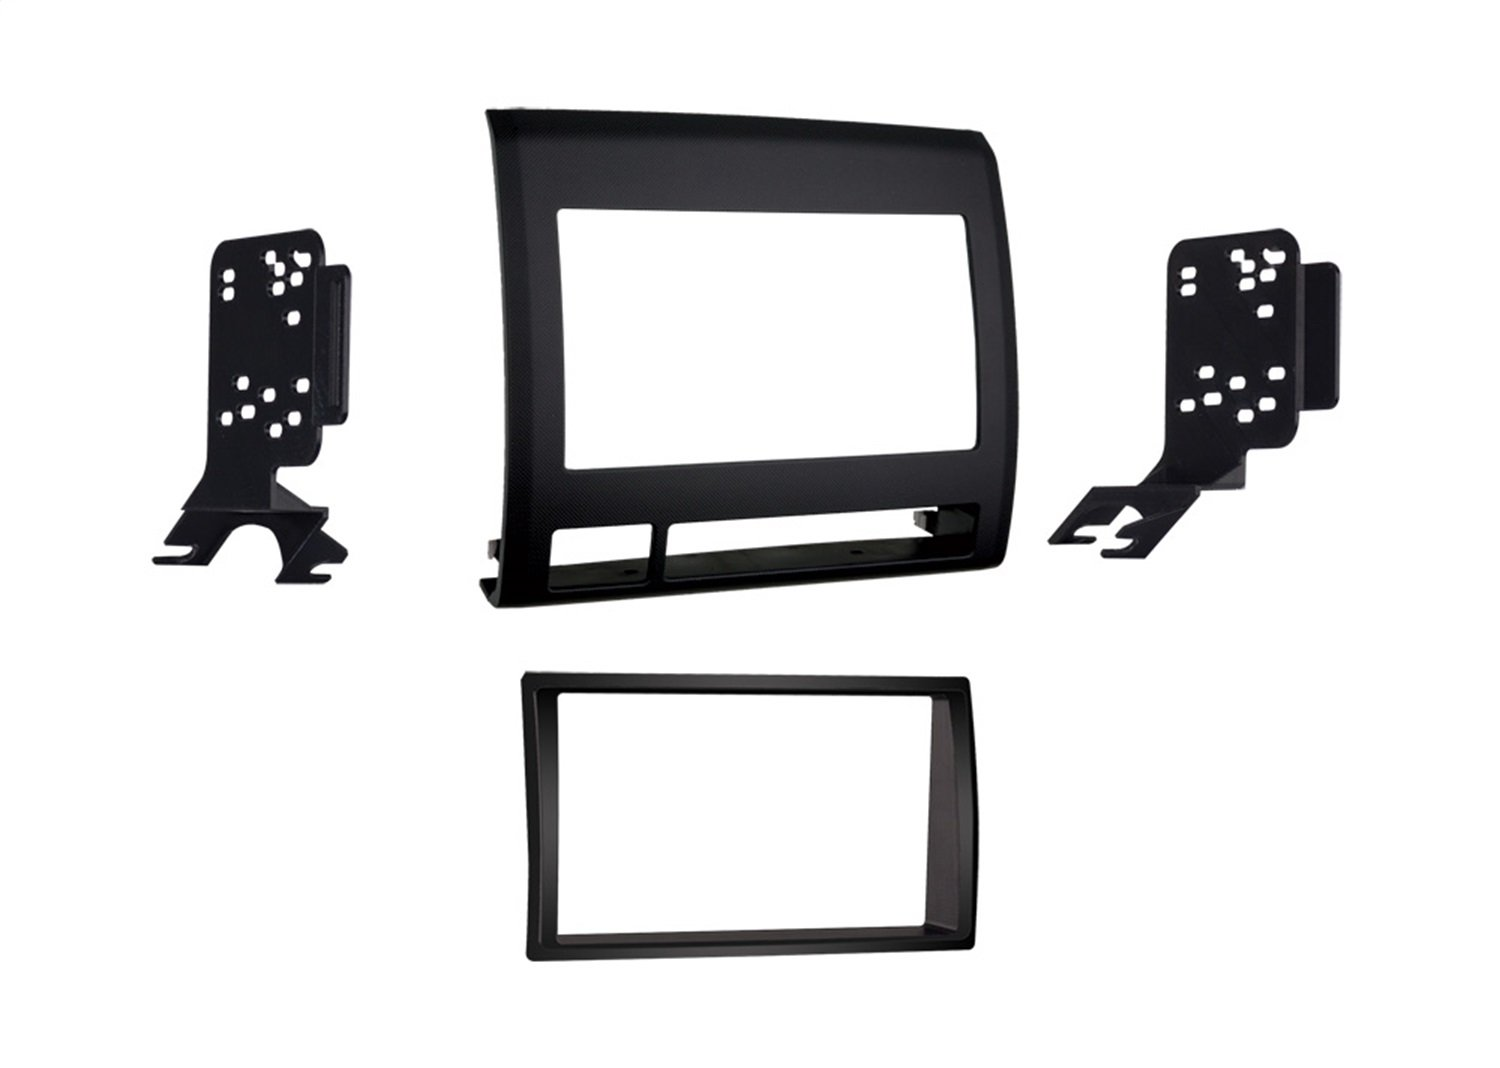 Metra 95-8214TB Double DIN Dash Kit for Toyota Tacoma 2005-2011 Vehicle (Black)